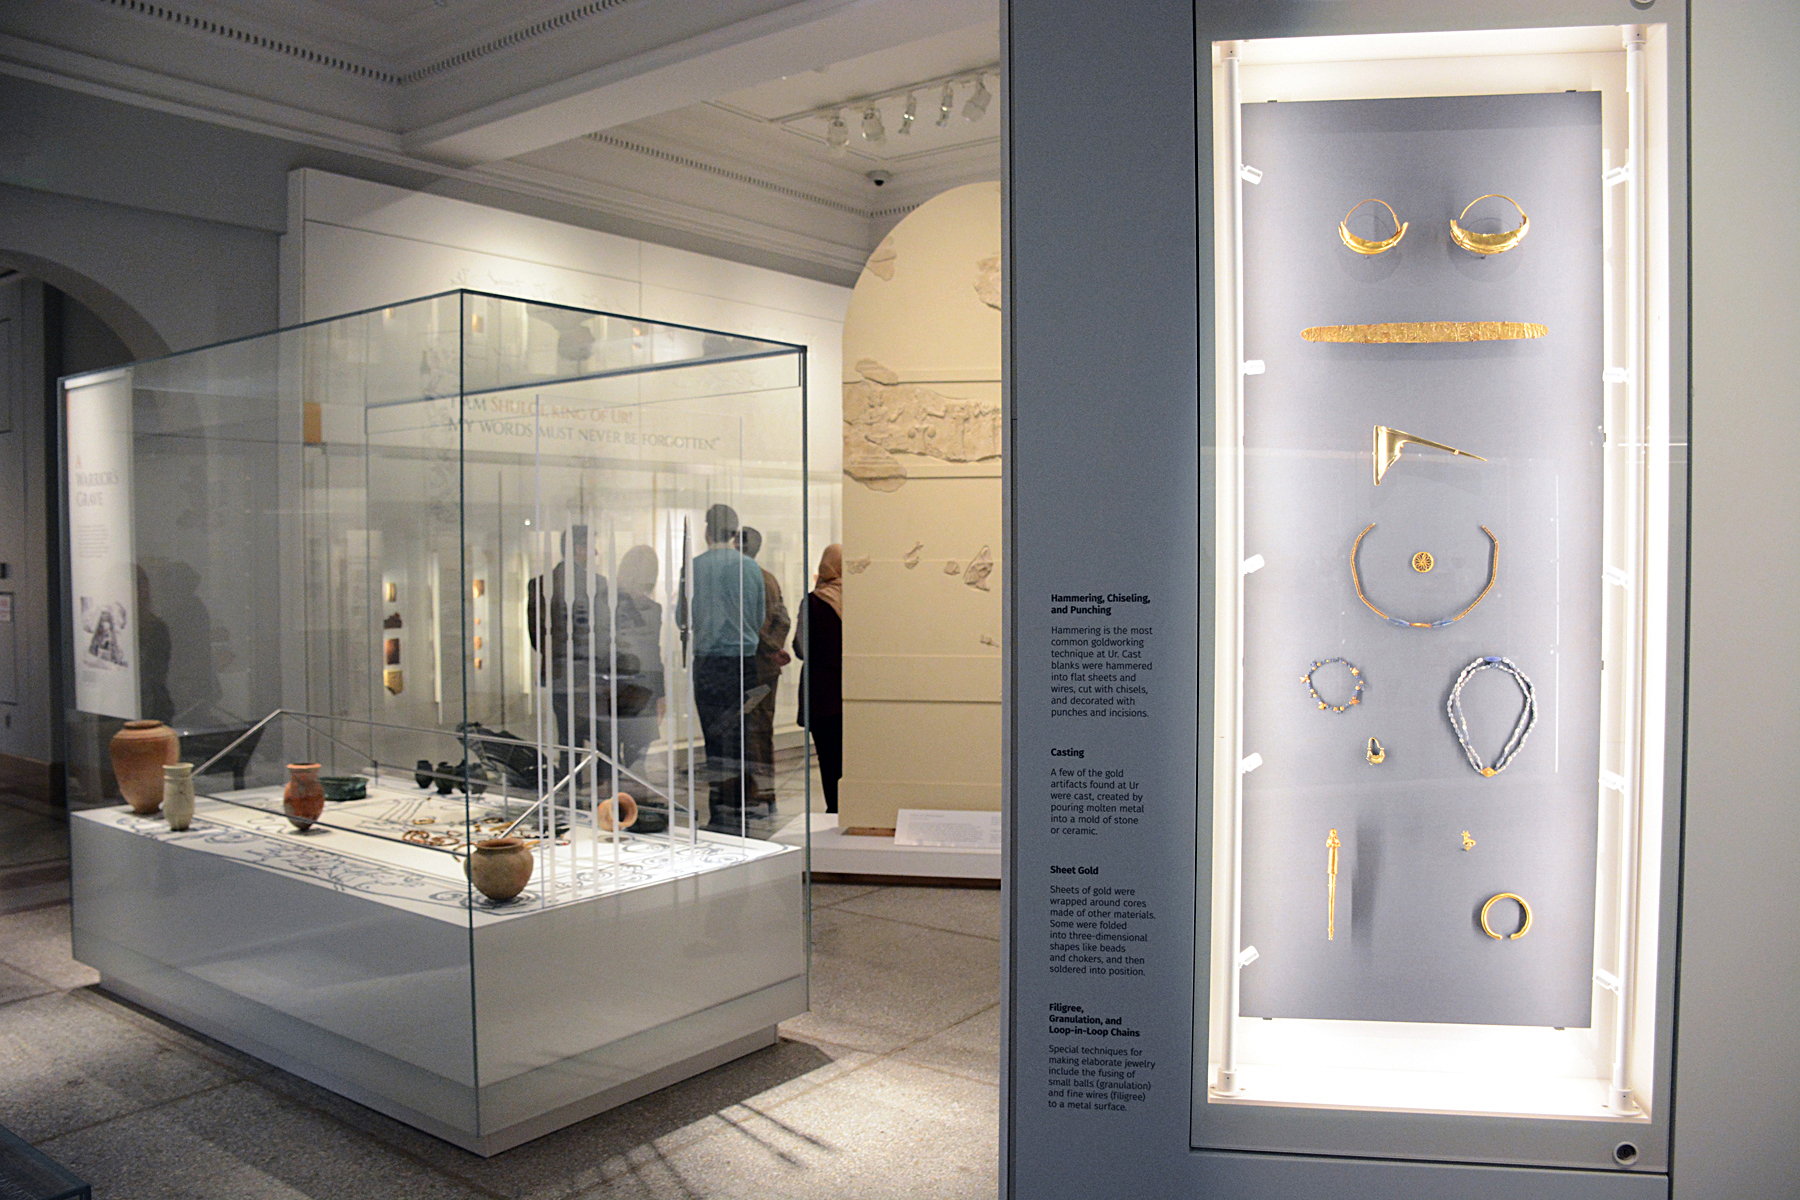 Fig. 2. A view in the Penn Museum's Middle East Galleries. On the right, finely crafted jewelry made of gold and precious stones, excavated from the royal tombs at Ur. The central case features materials from the excavation of a warrior's grave, dating to ca. 100 years after the royal tombs at Ur, likely the tomb of an important warrior, who was richly adorned and buried along with numerous weapons. In the background is visible the resin-cast reconstruction of Ur-Namma's stele from ca. 2100 B.C.E. (courtesy Penn Museum, Philadelphia).